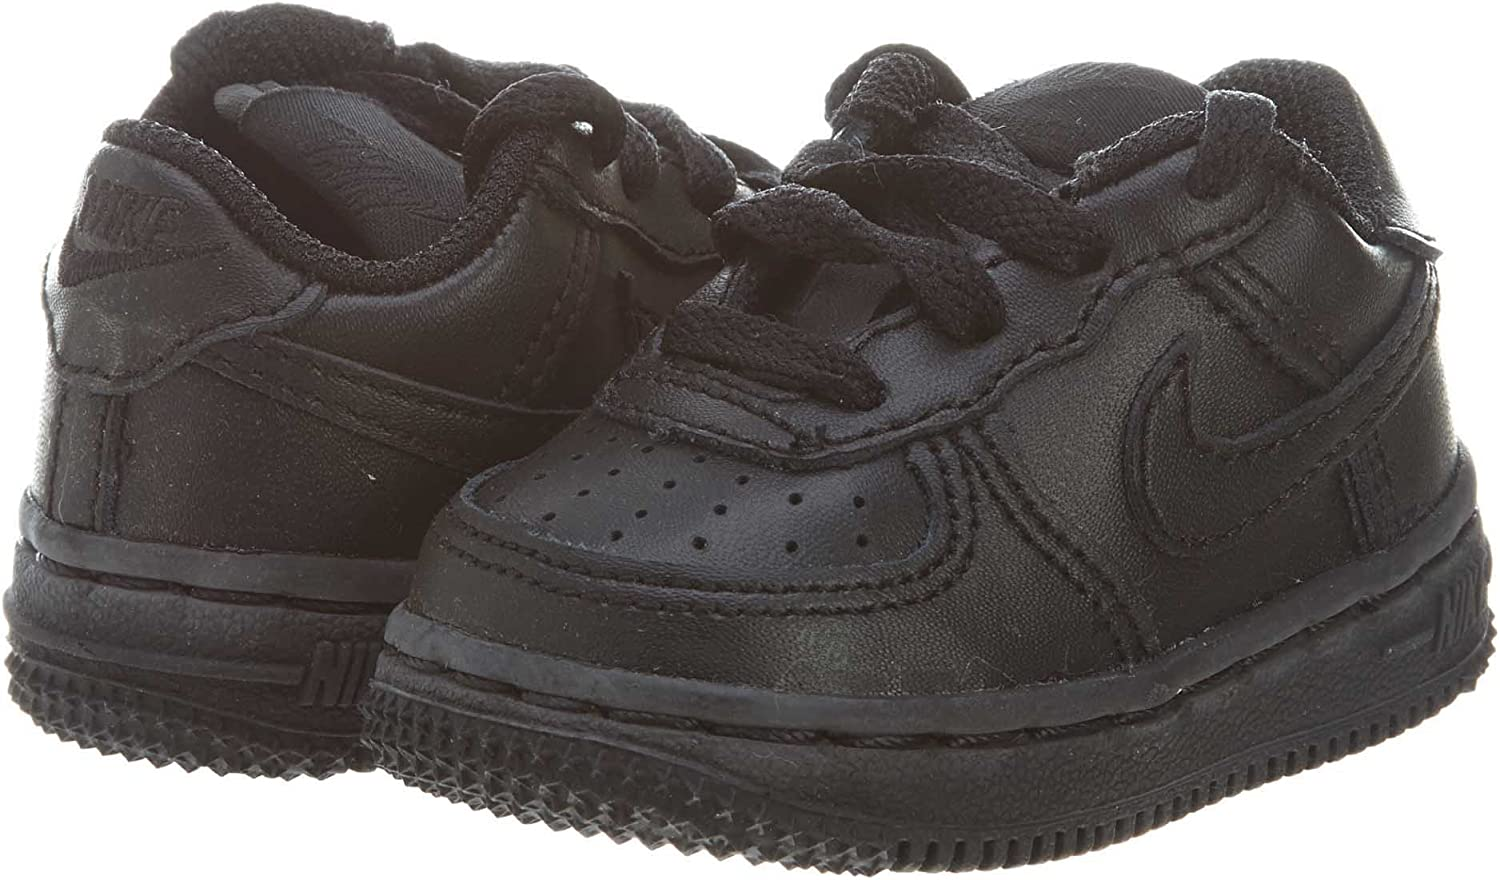 Nike Force 1 Toddlers Sneakers Style: 307119-001 Size: 5 Black